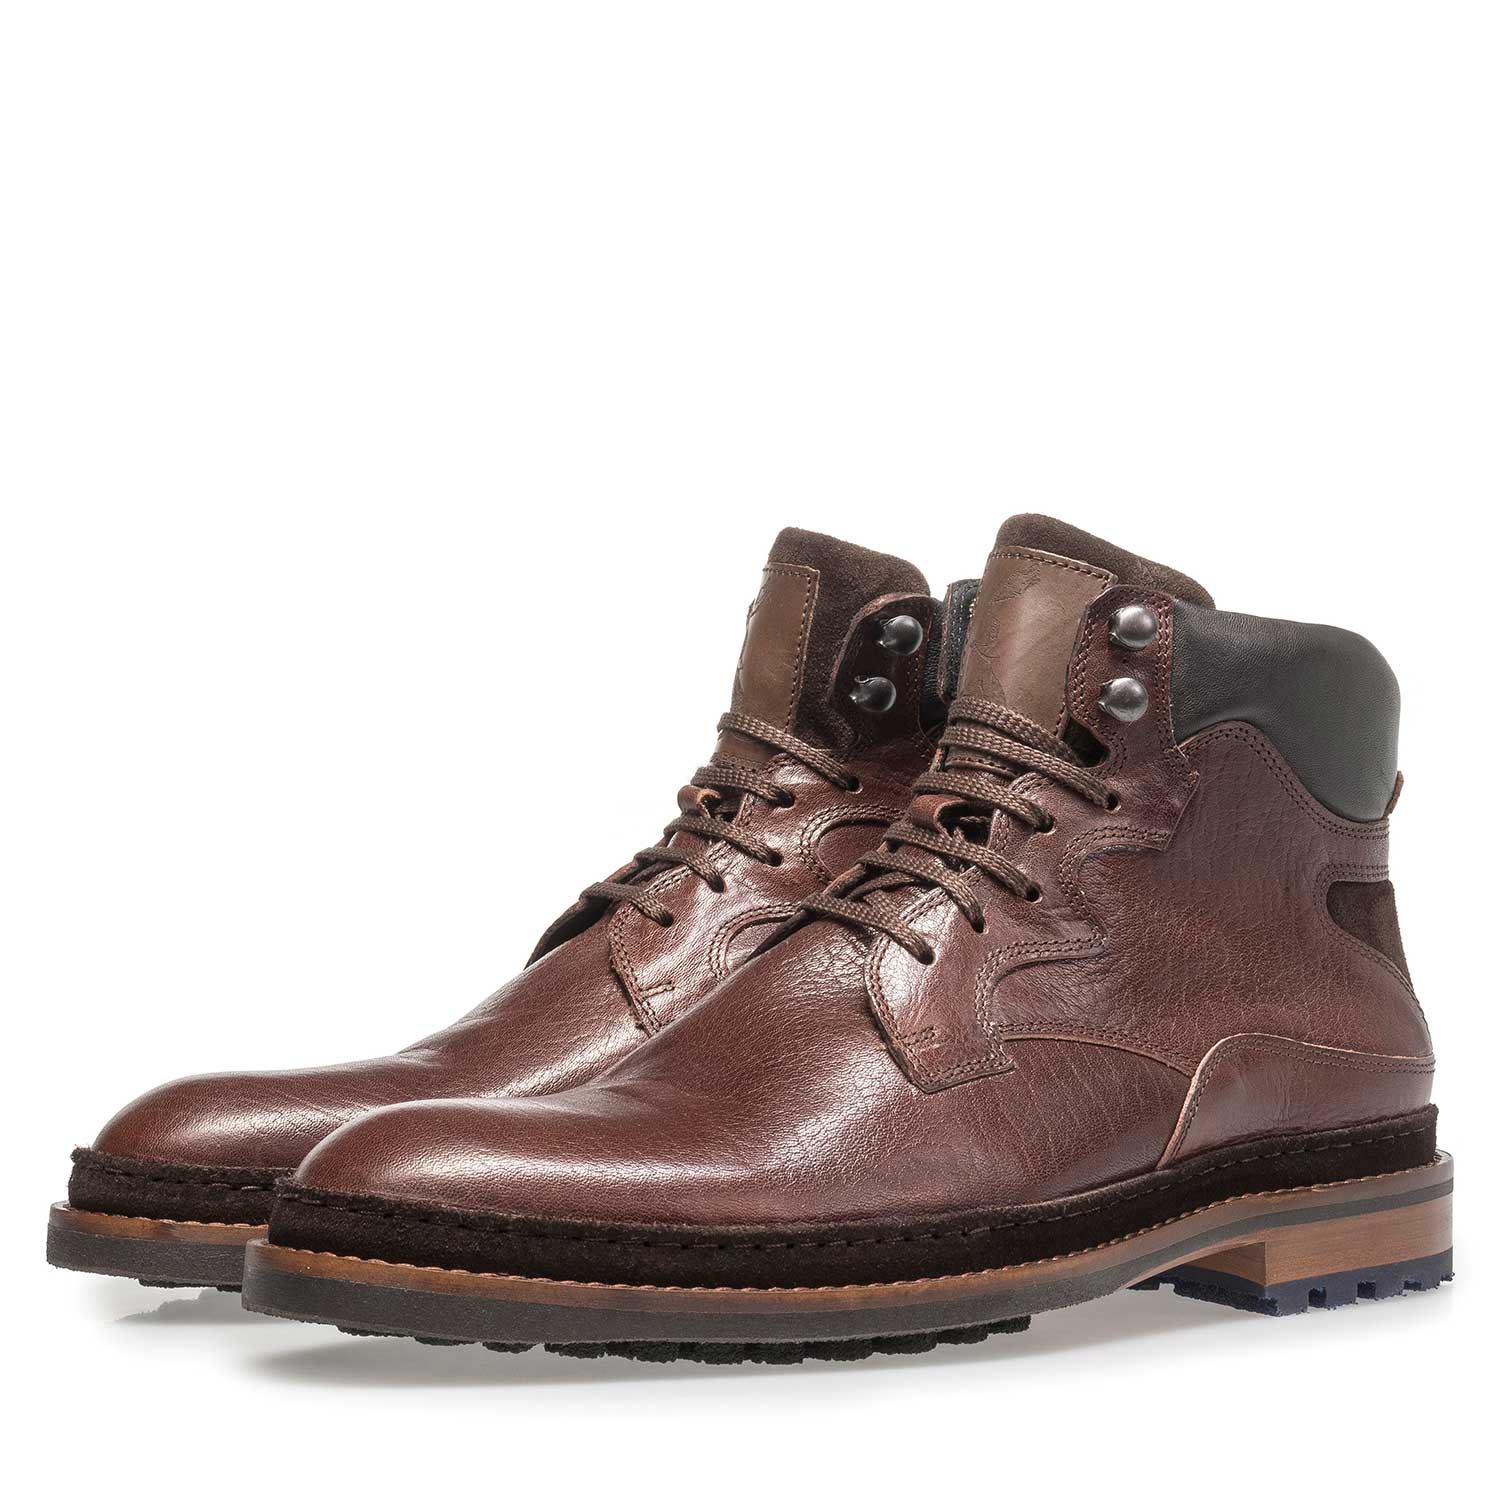 10503/00 - Red-brown calf leather boot